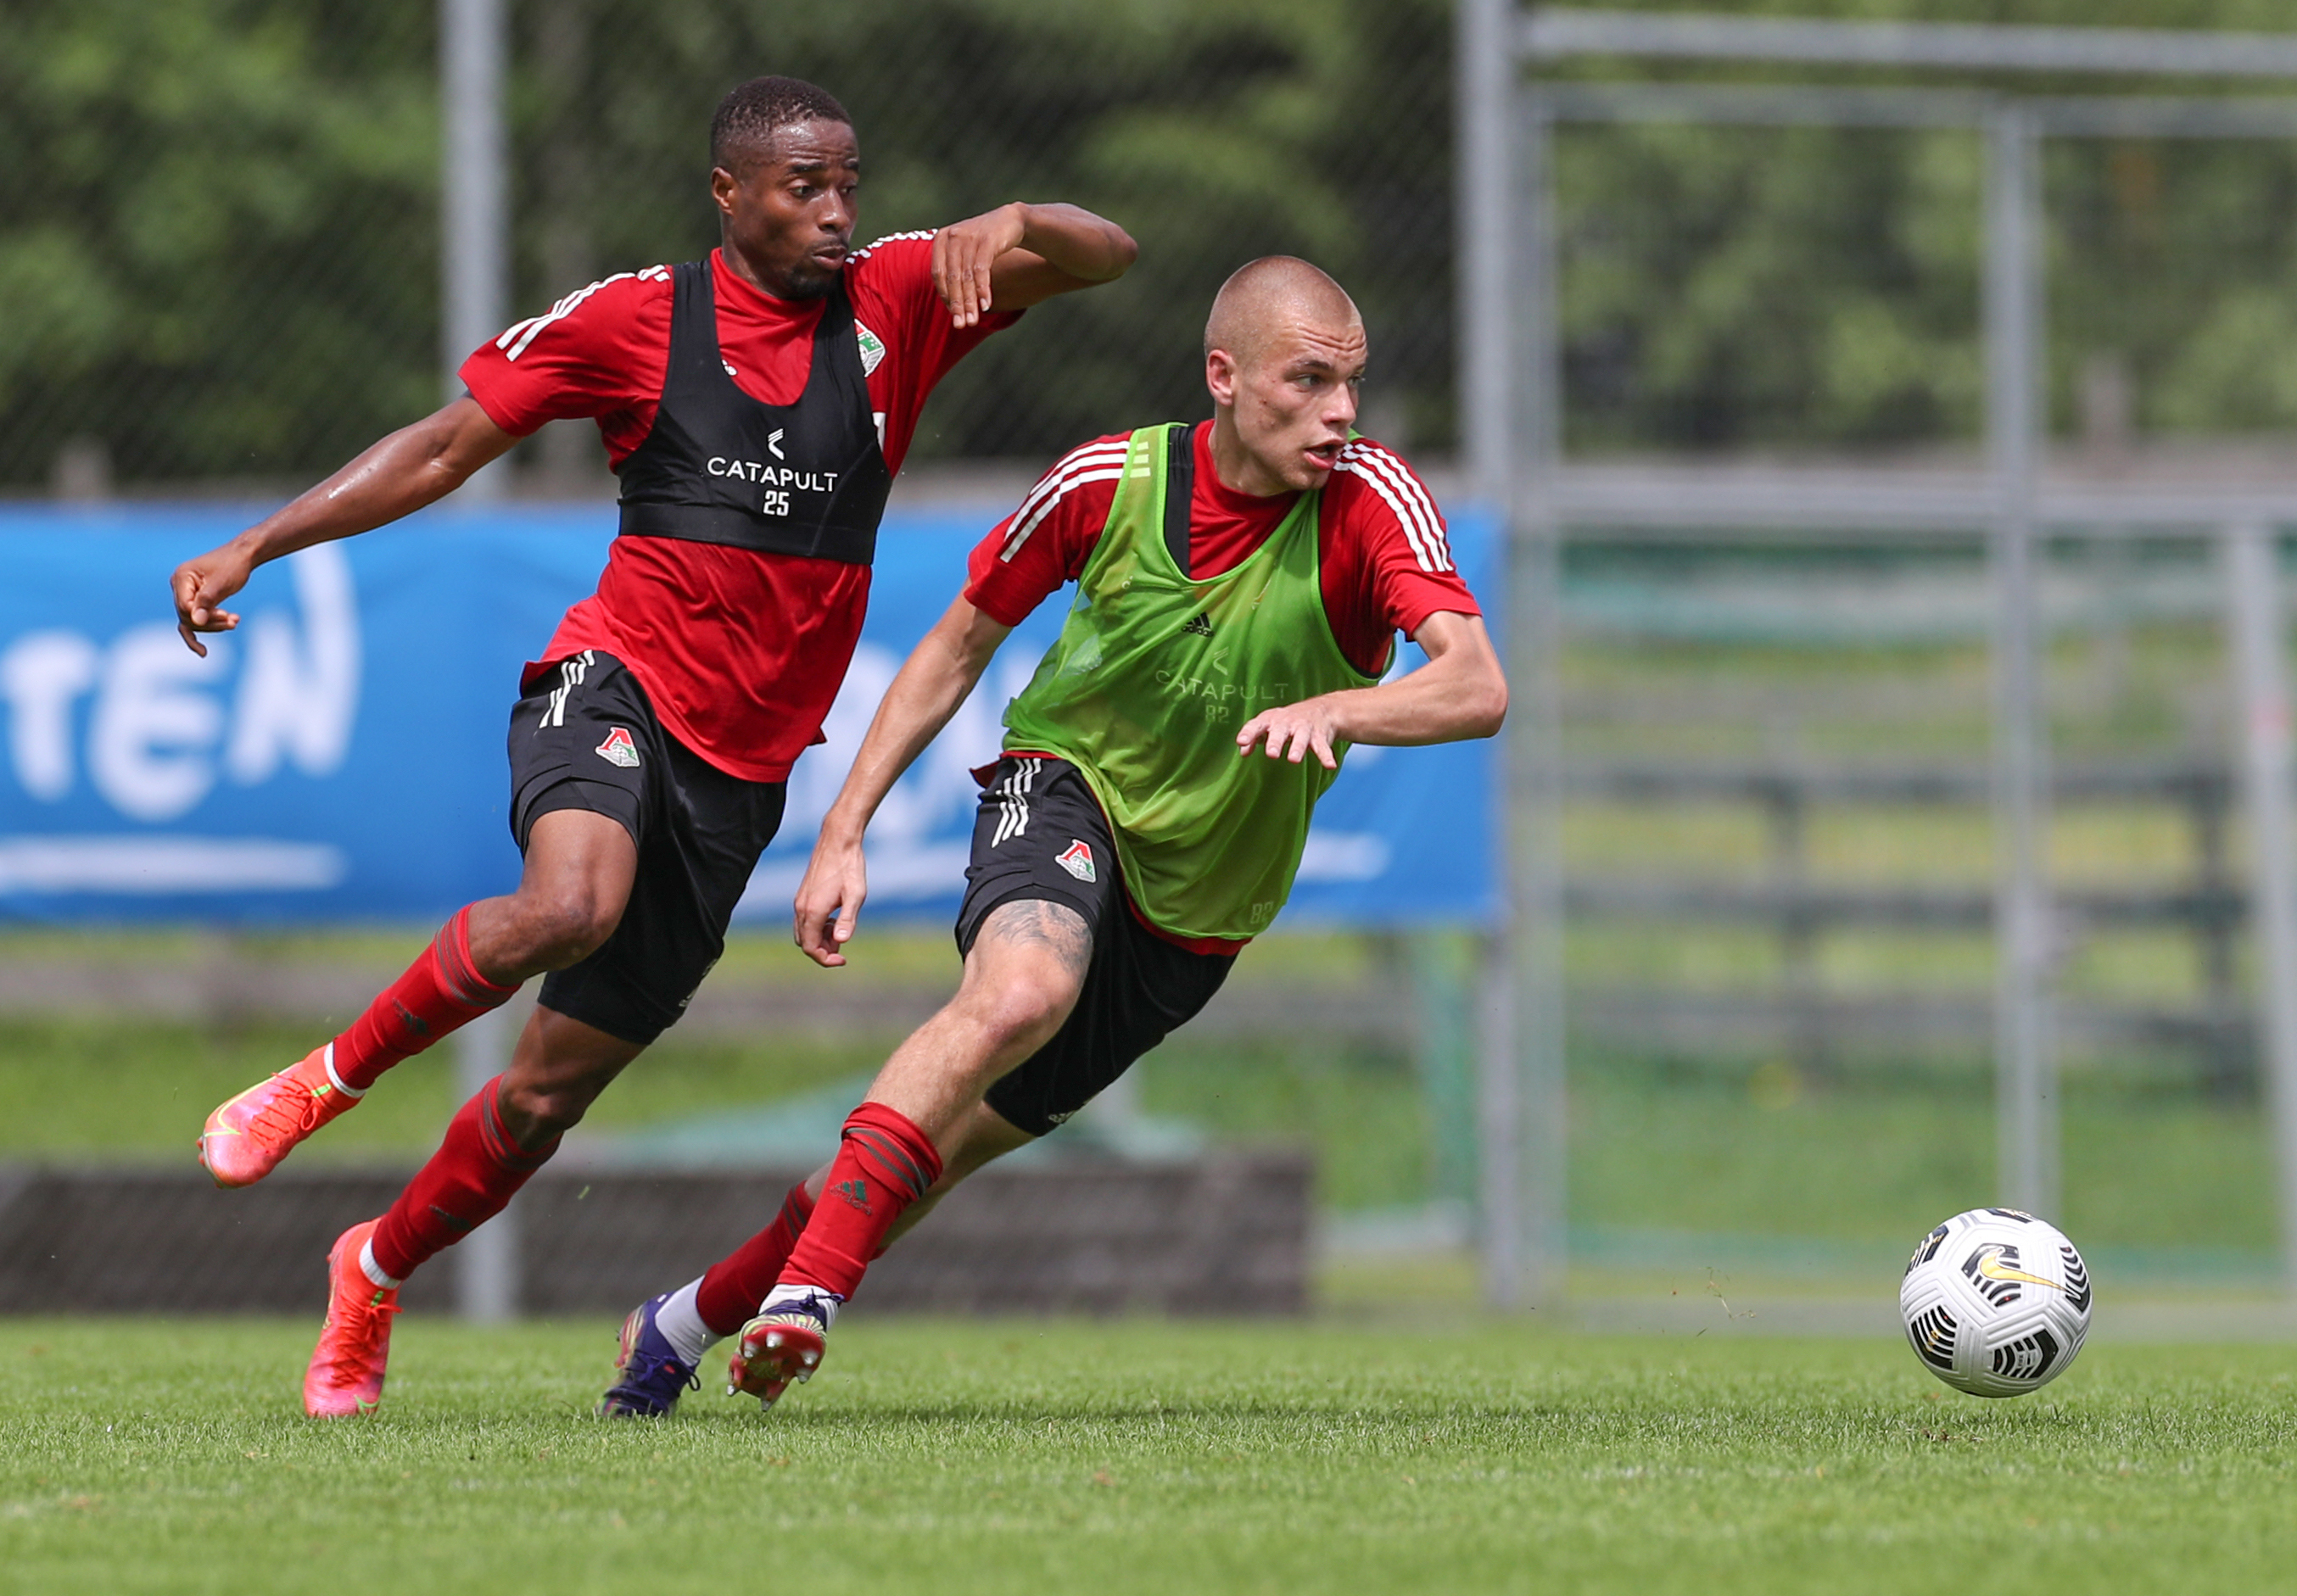 The seventh day of training camp in Austria. Two-sided game